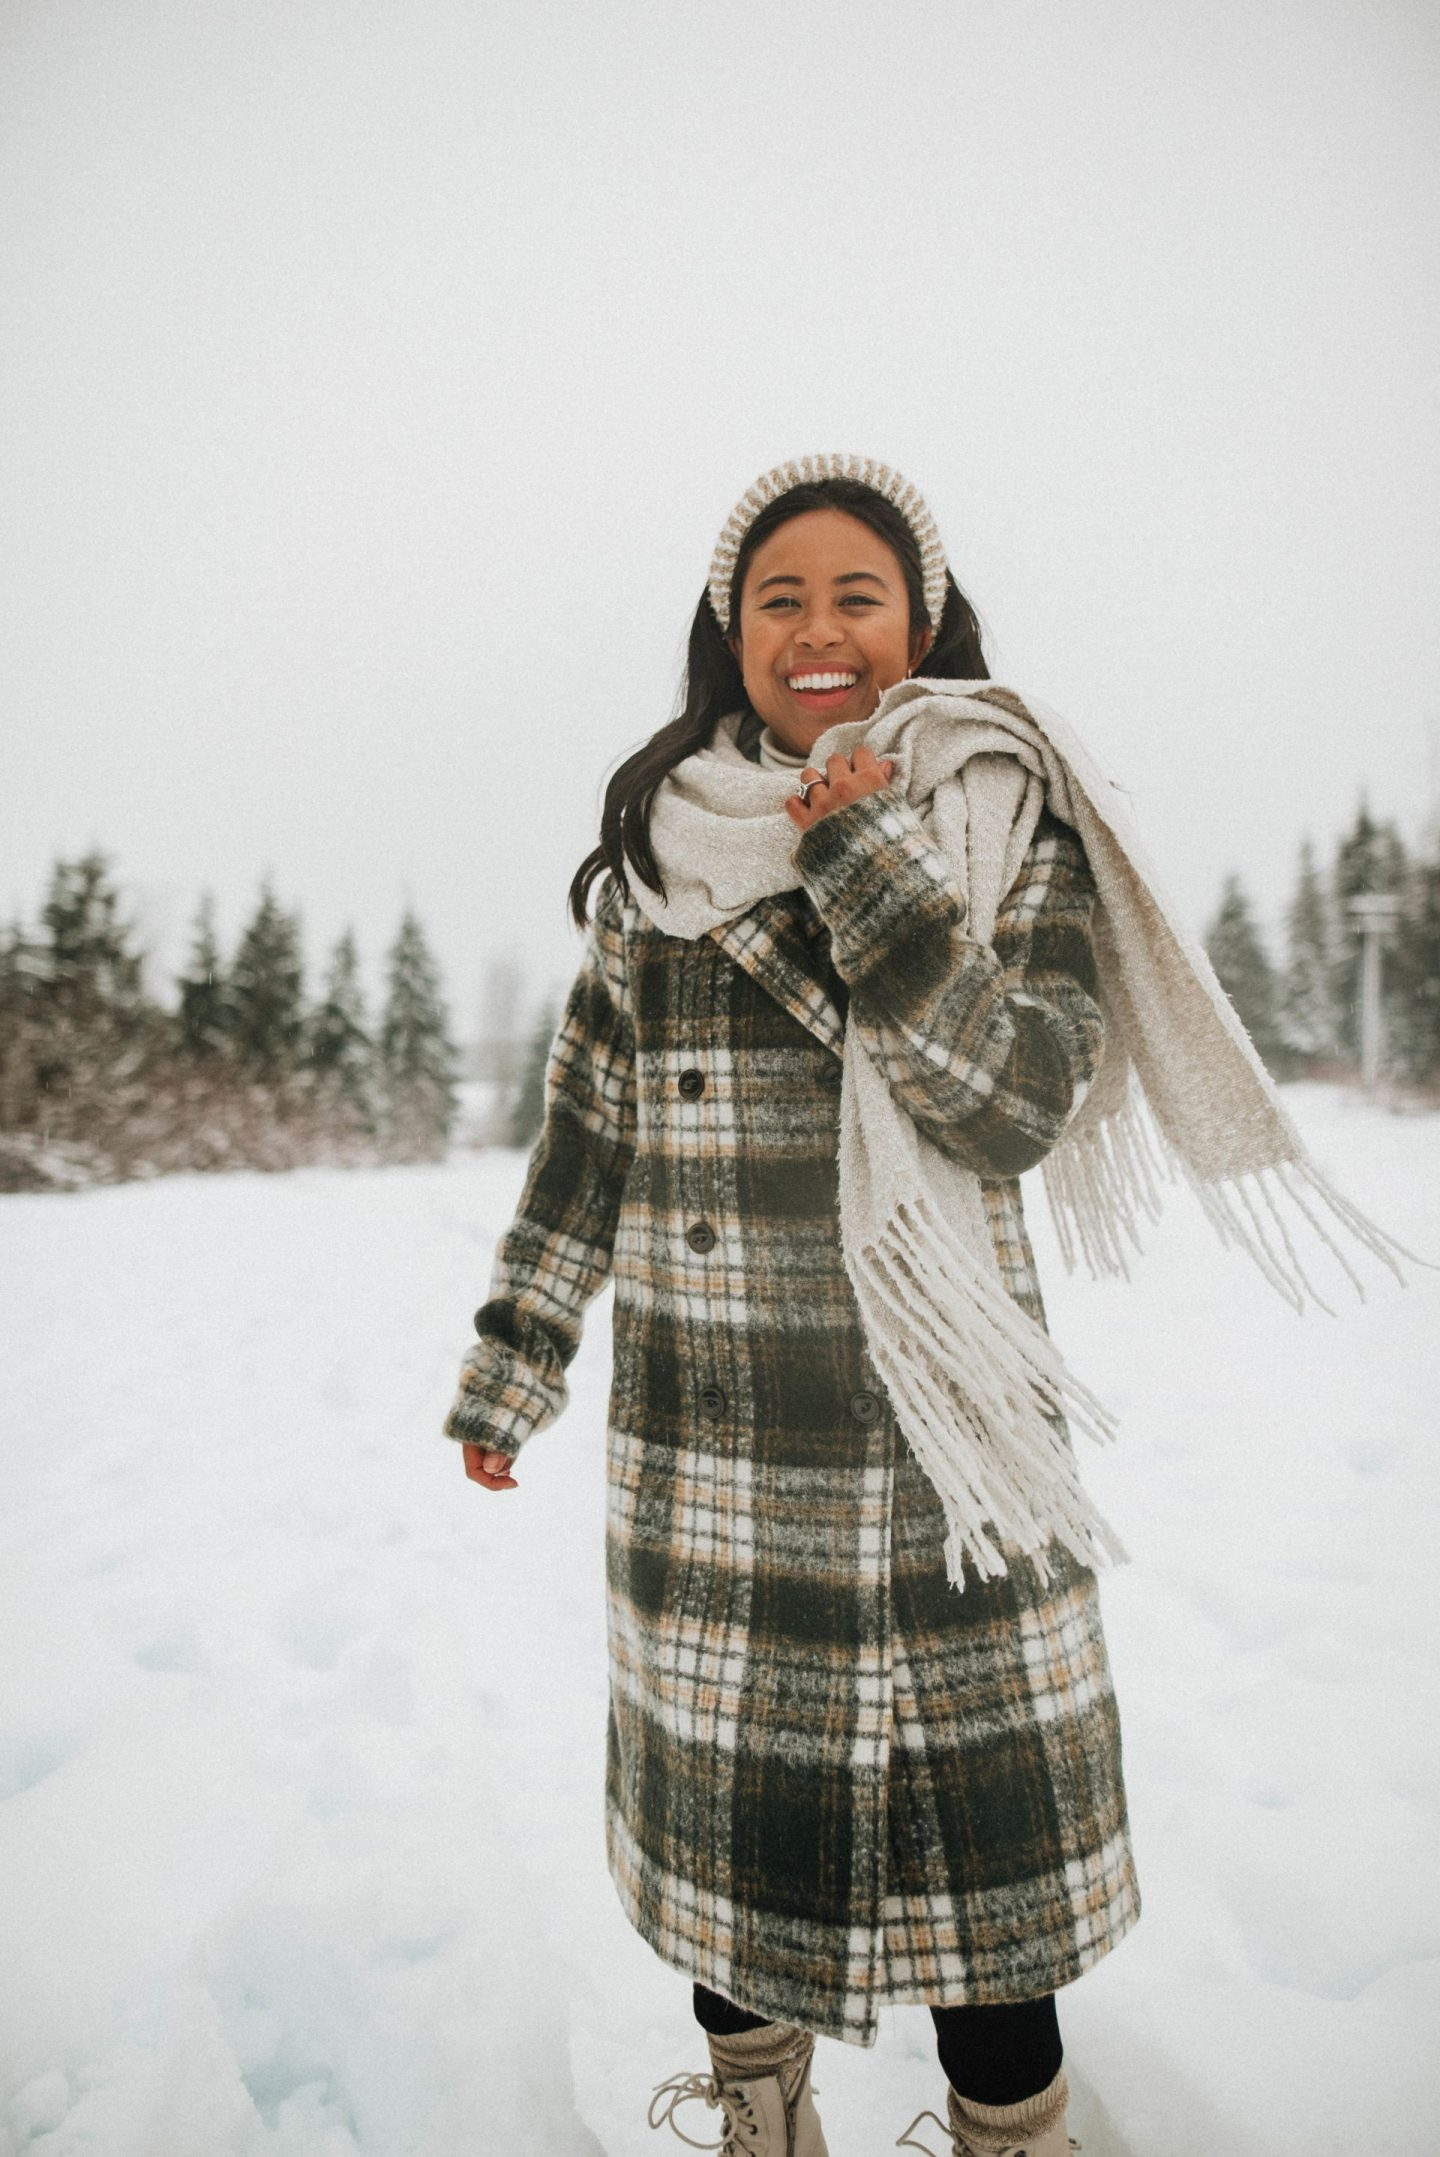 How to Find Health Insurance as a Freelancer in Washington State - winter outfit ideas - taking blogging full-time - taking content creation full-time - Snoqualmie Pass - image from @emmasedition - www.emmasedition.com